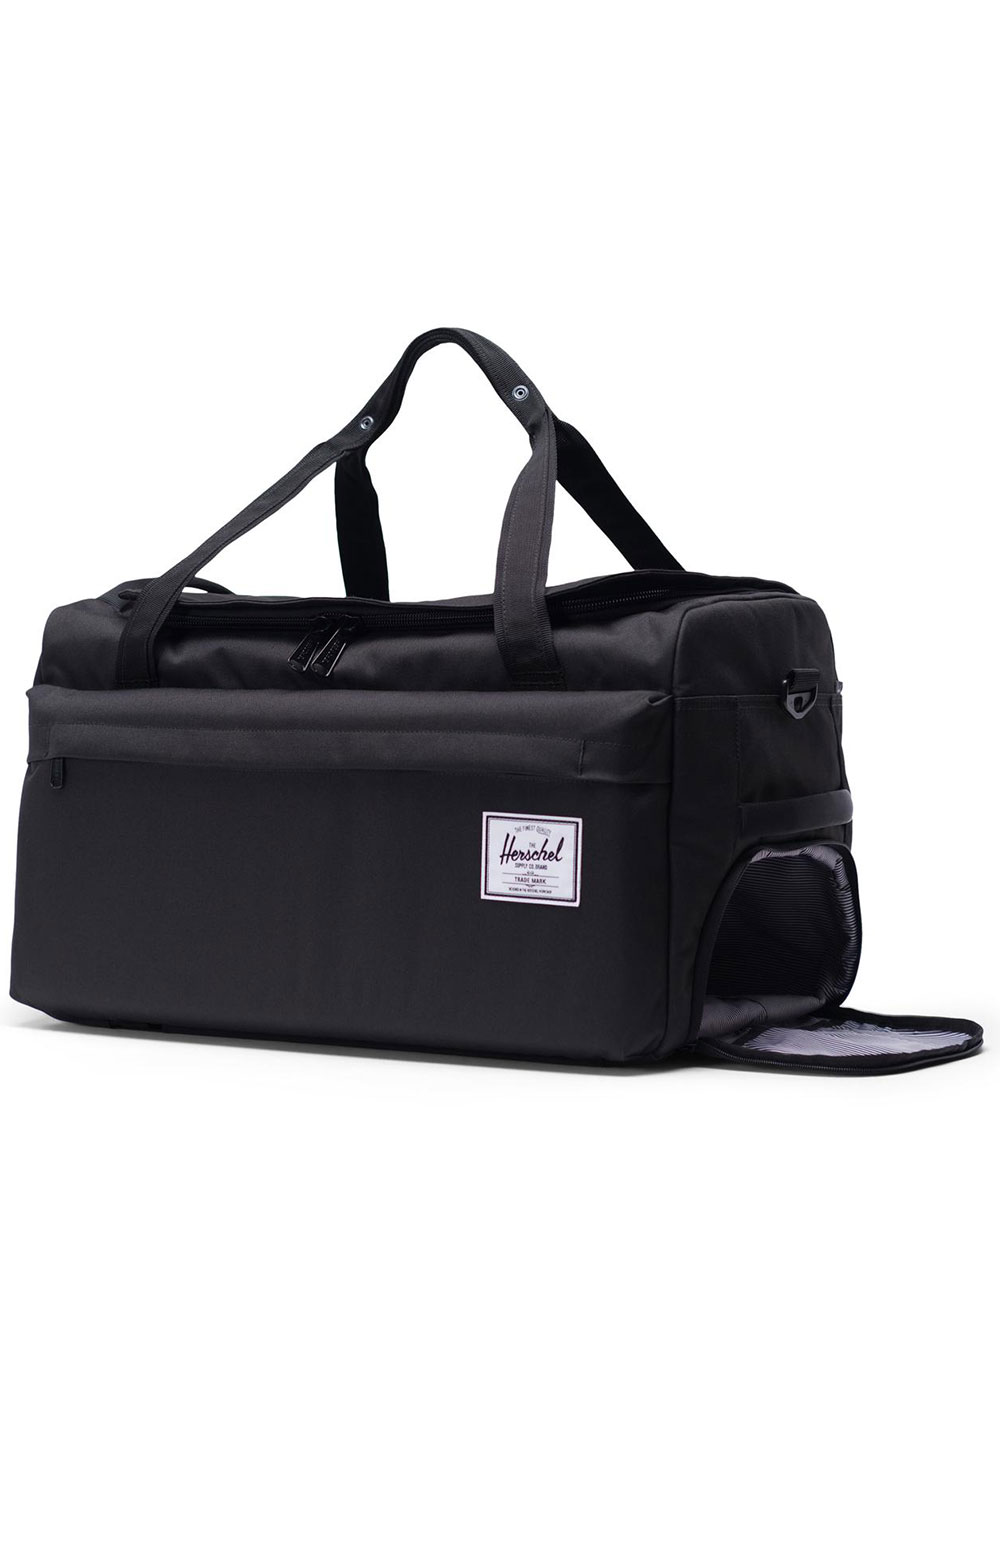 Outfitter Luggage 50L - Black 3